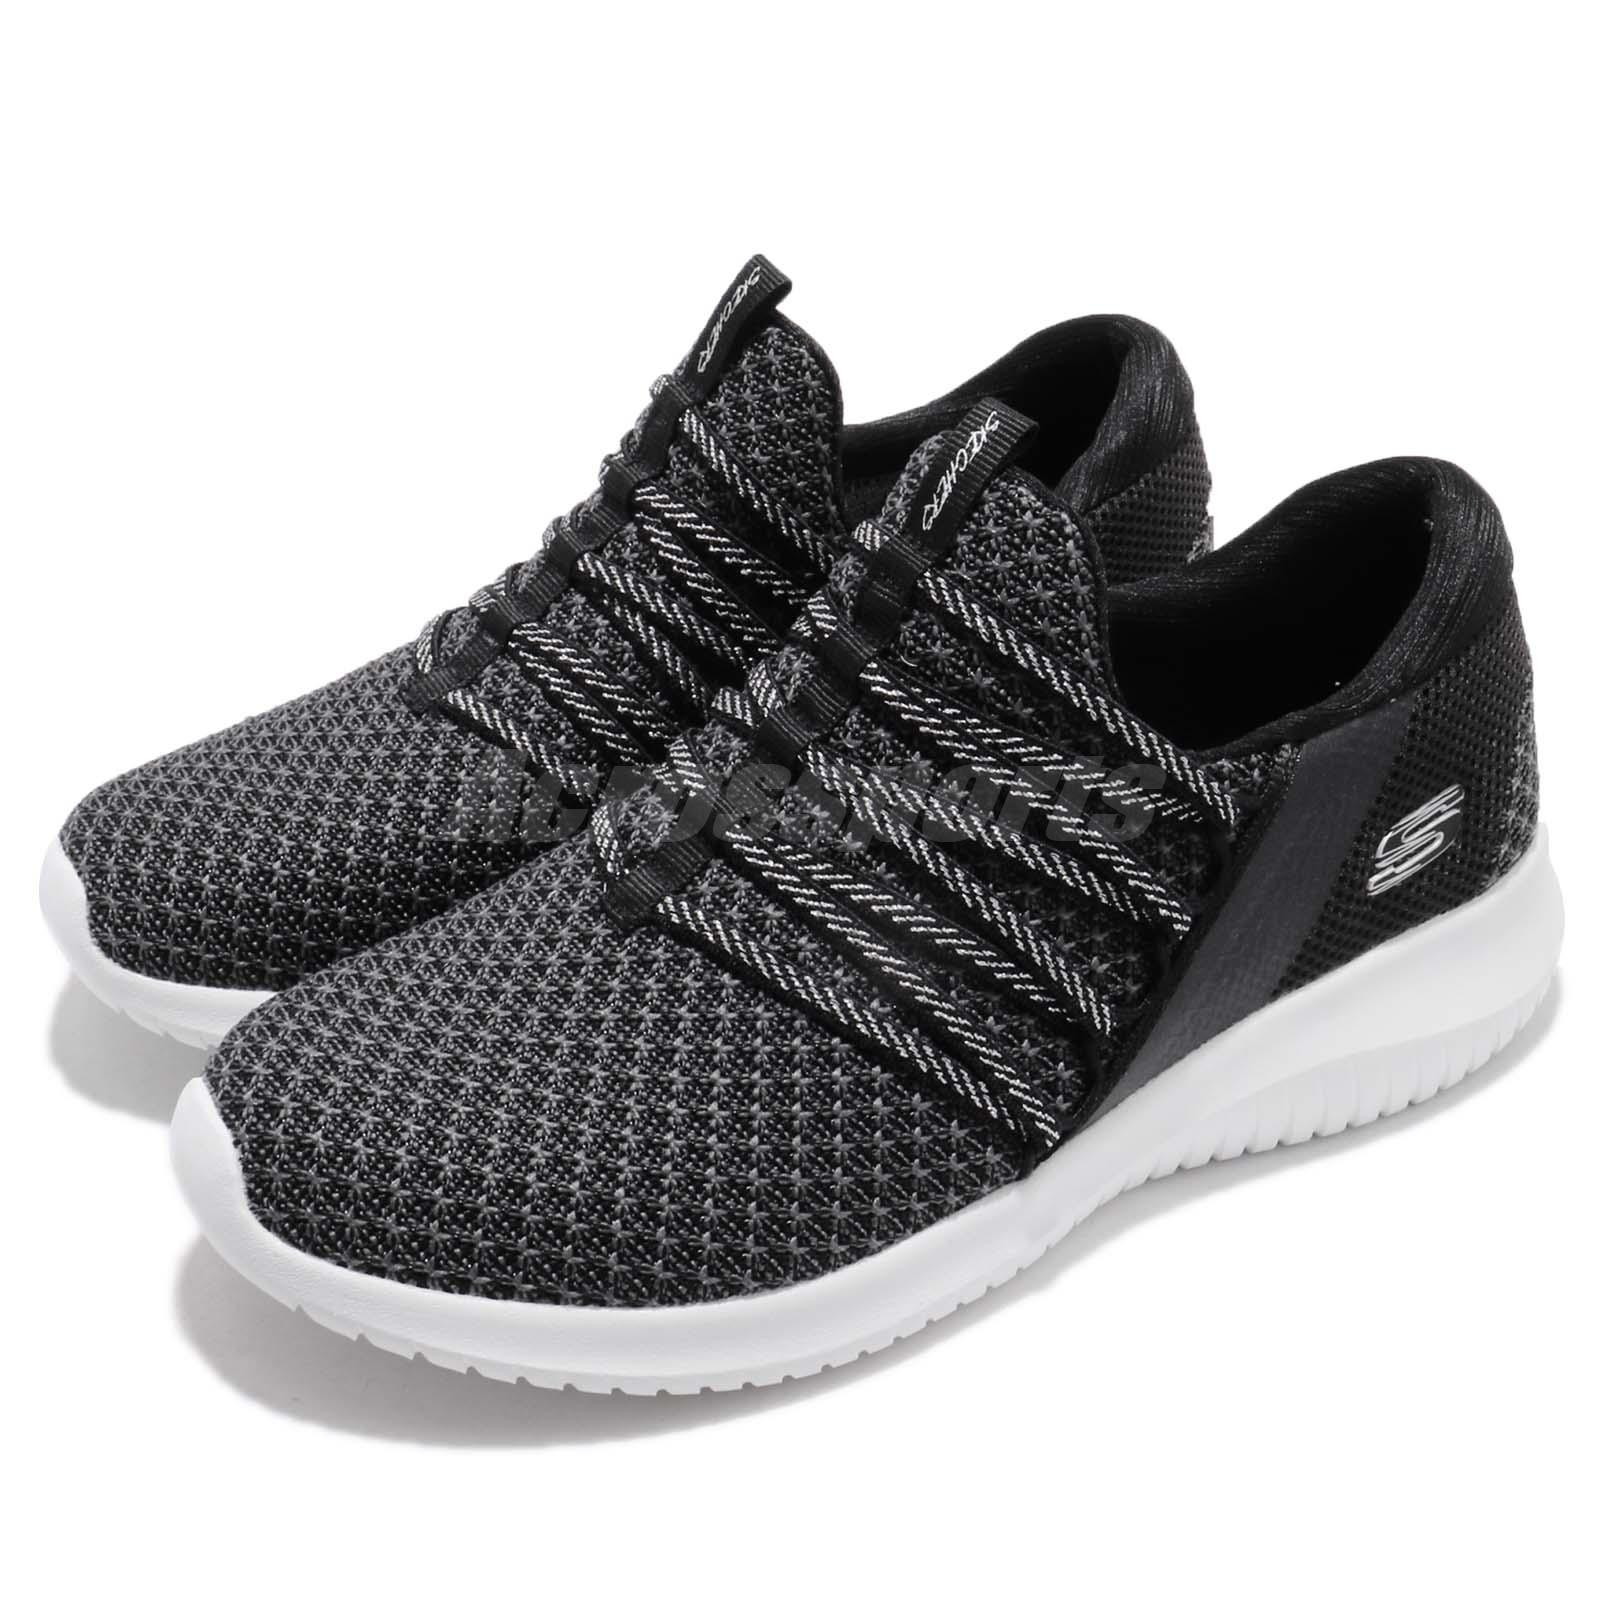 2d2949f56674 Skechers Ultra Flex-Bright Future Black White Women Casual Shoes ...